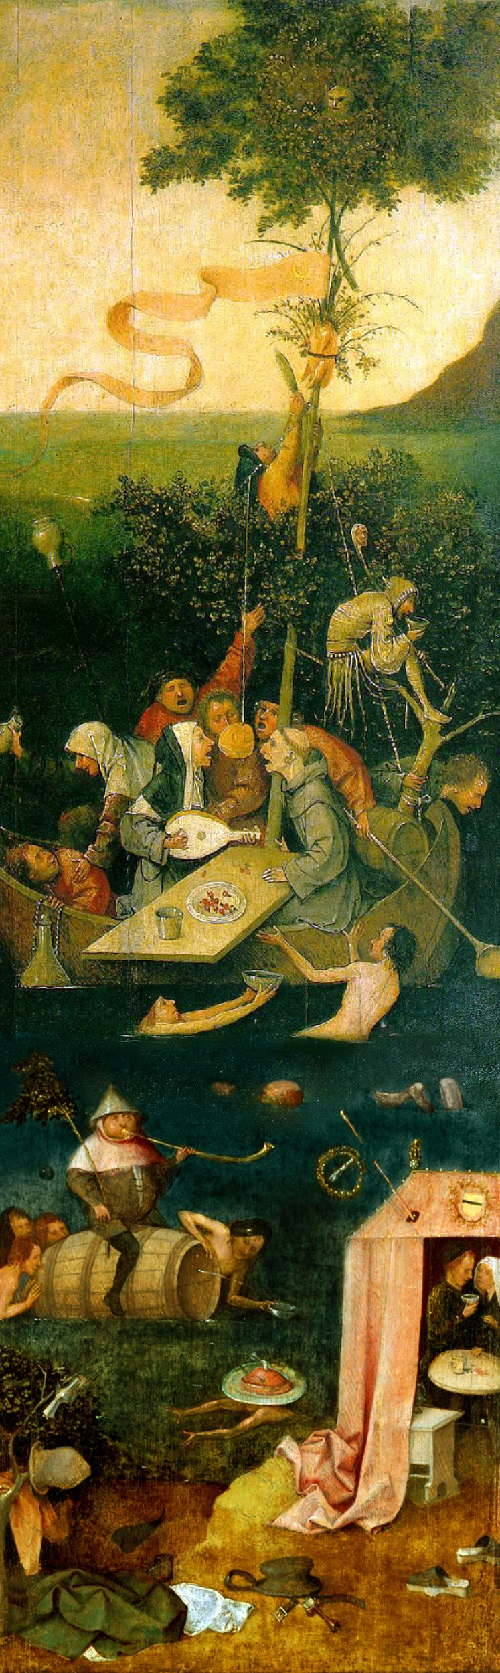 Hieronymus bosch ship of fools symbolism art kaleidoscope hieronymus bosch ship of fools symbolism biocorpaavc Image collections